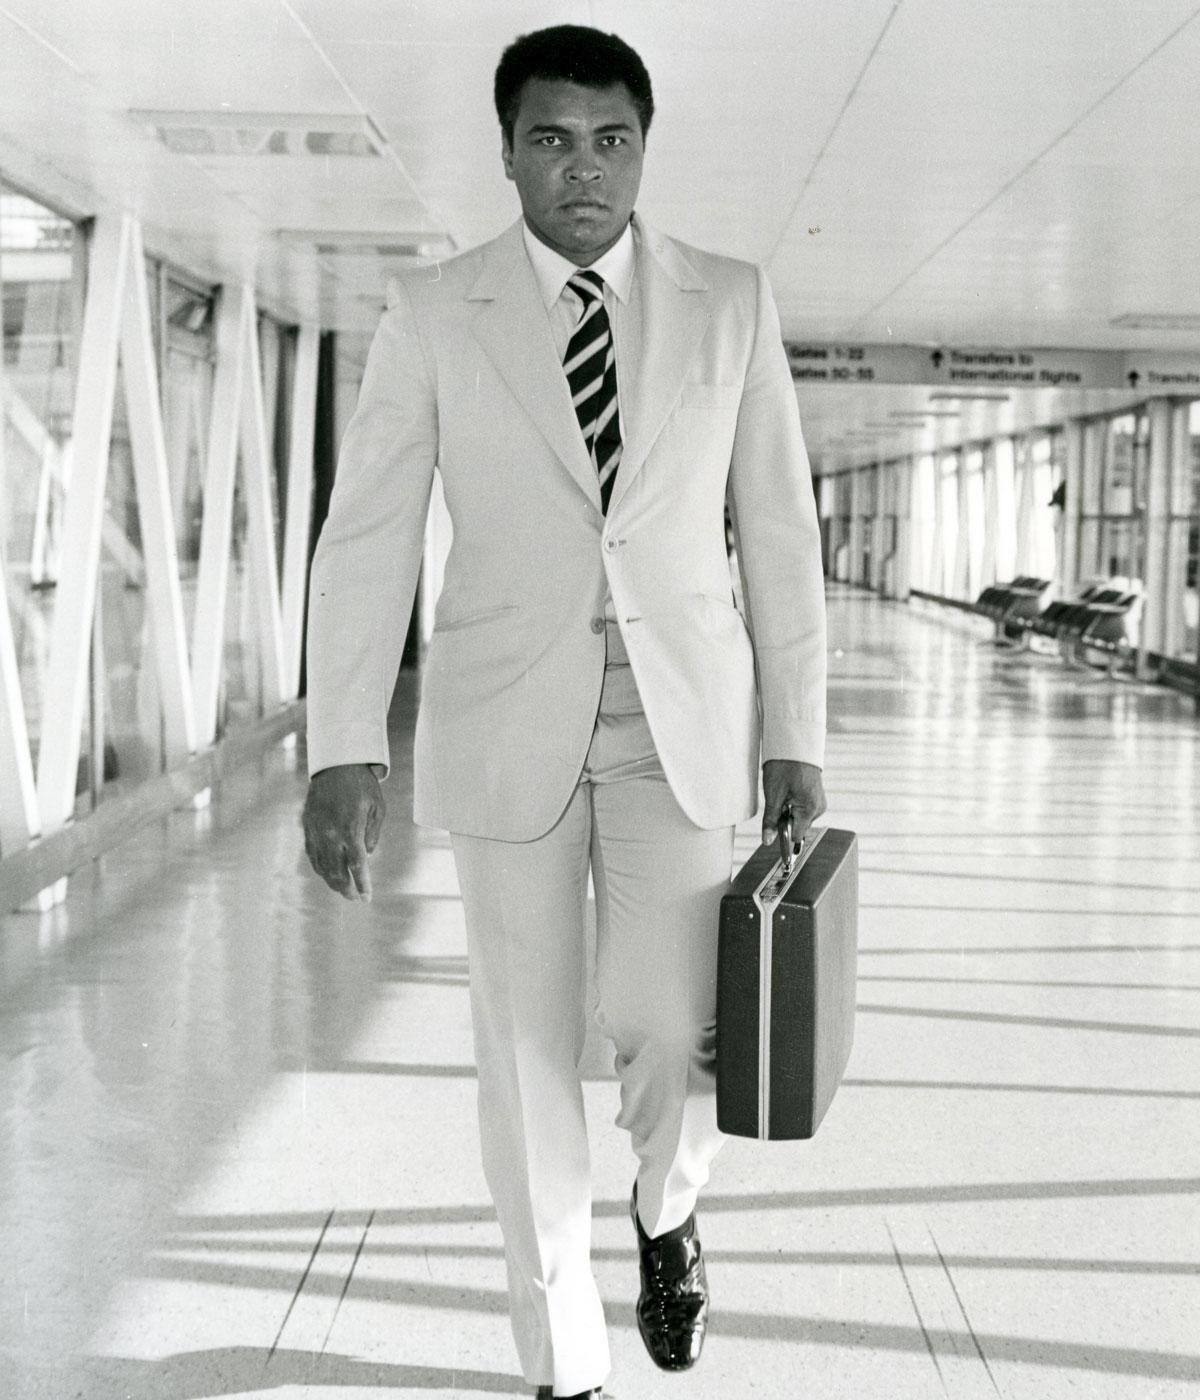 black and white photo of moahmmed ali in a suit holding a briefcase